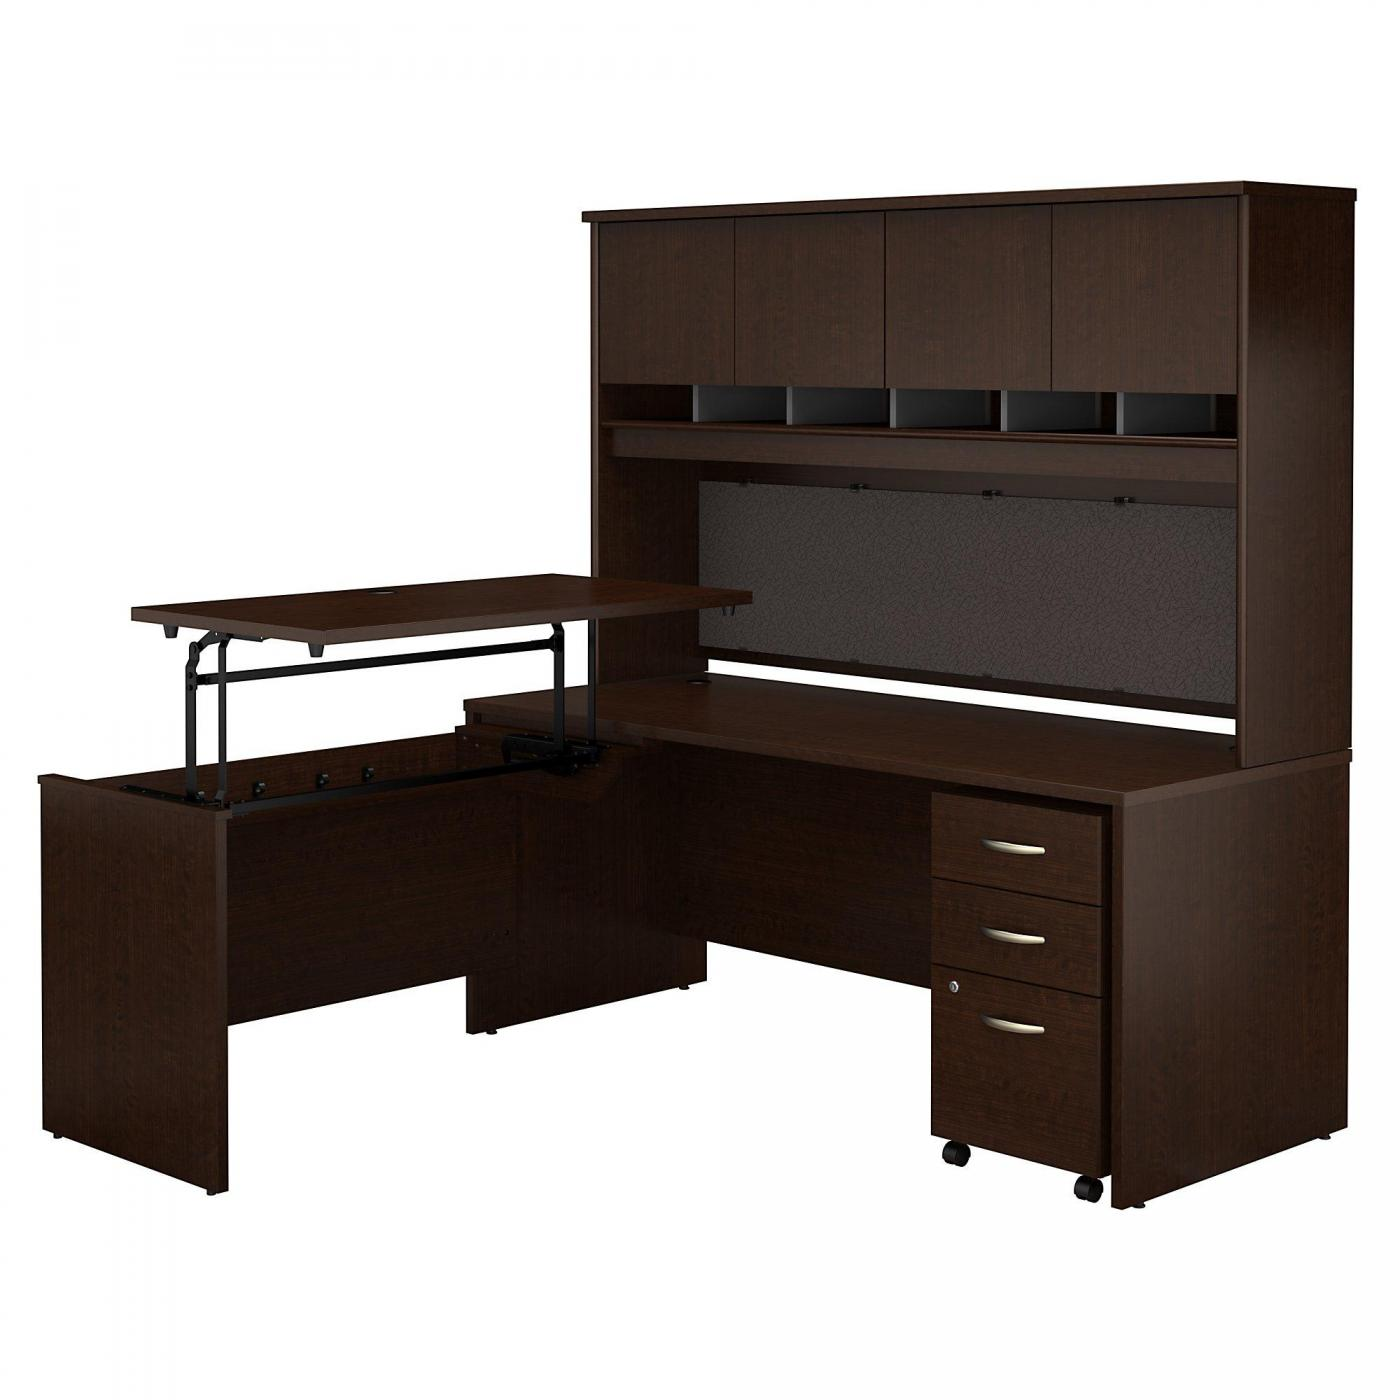 <font color=#c60><b>BUSH BUSINESS FURNITURE SERIES C 72W X 30D 3 POSITION SIT TO STAND L SHAPED DESK WITH HUTCH AND MOBILE FILE CABINET. FREE SHIPPING. VIDEO:</font></b></font></b>